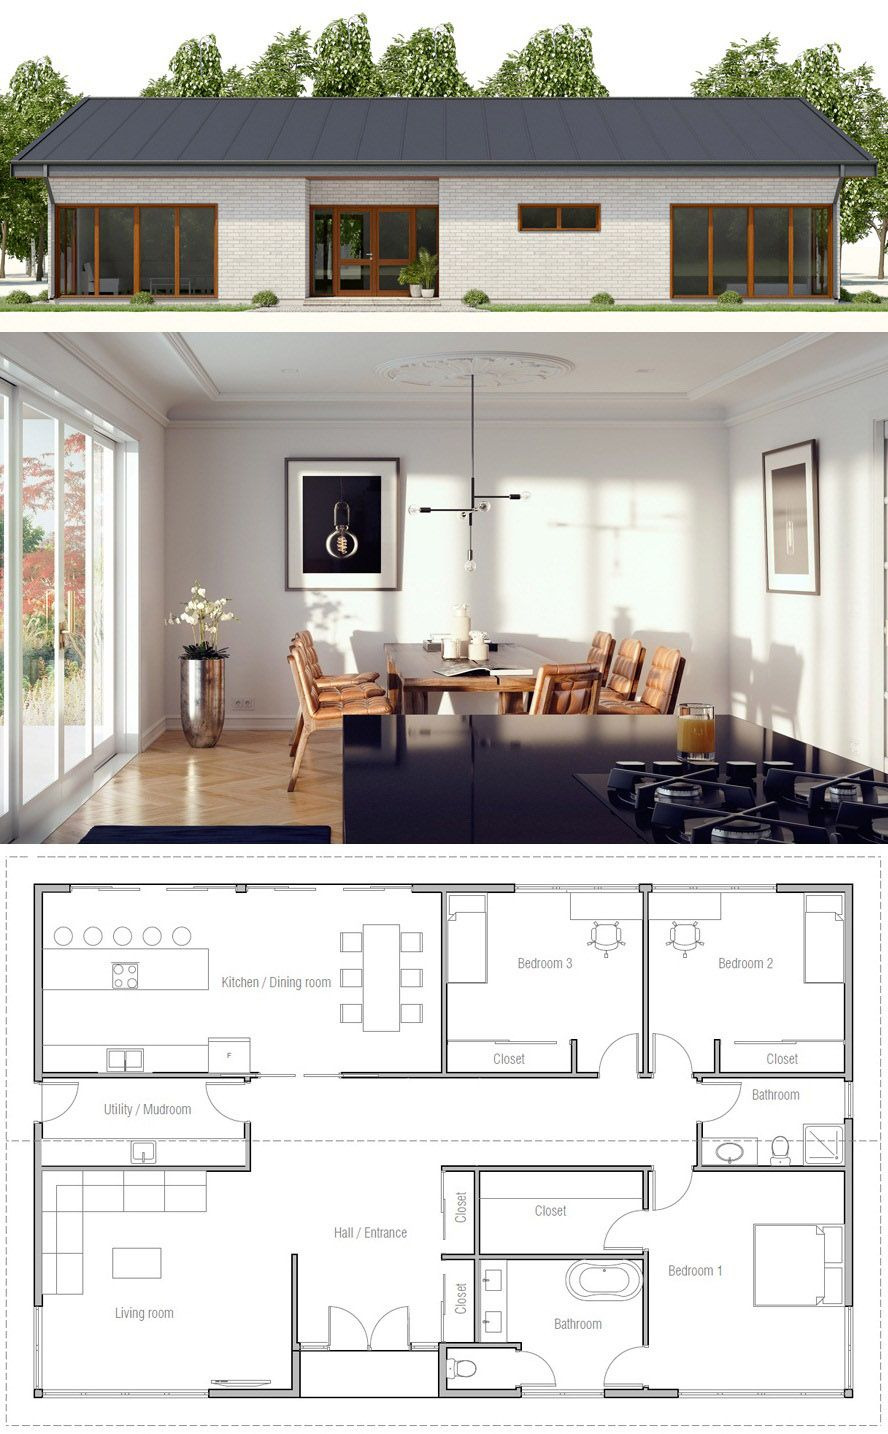 New Home House Plans Awesome Small House Design Home Plans House Plans New Home